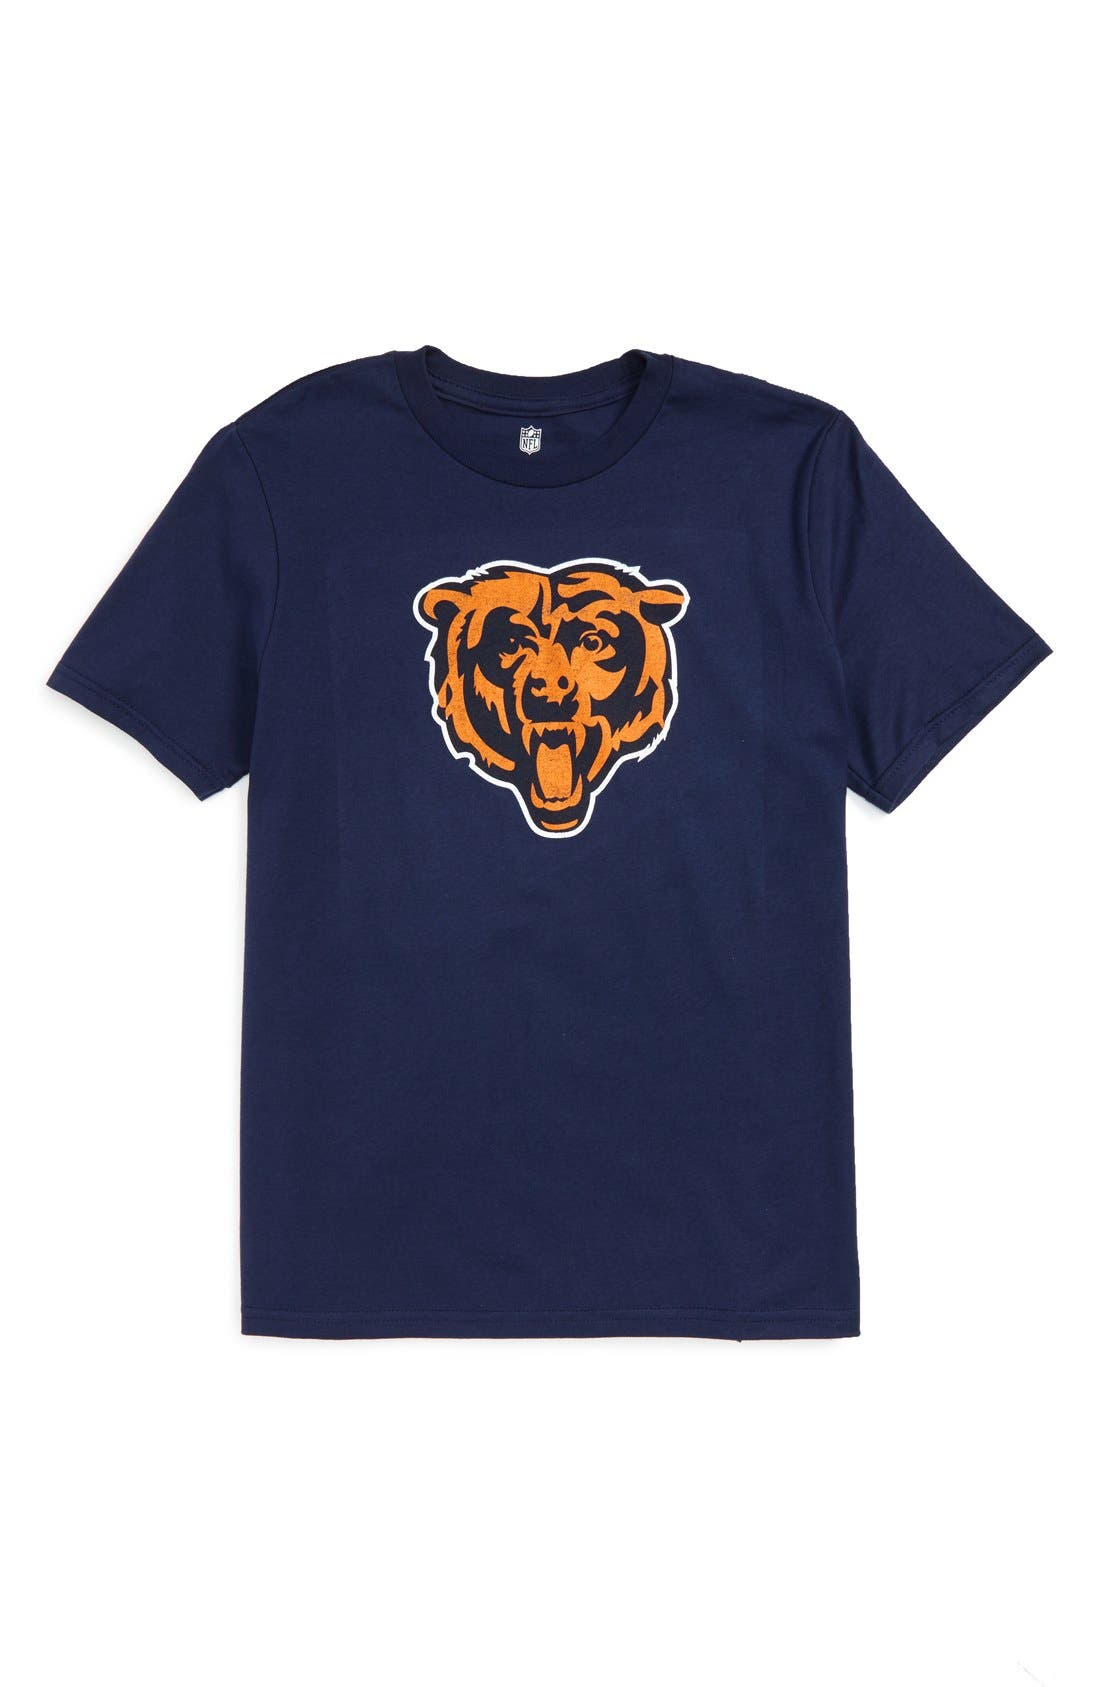 'NFL - Chicago Bears' Distressed Logo Graphic T-Shirt,                             Main thumbnail 1, color,                             Bears